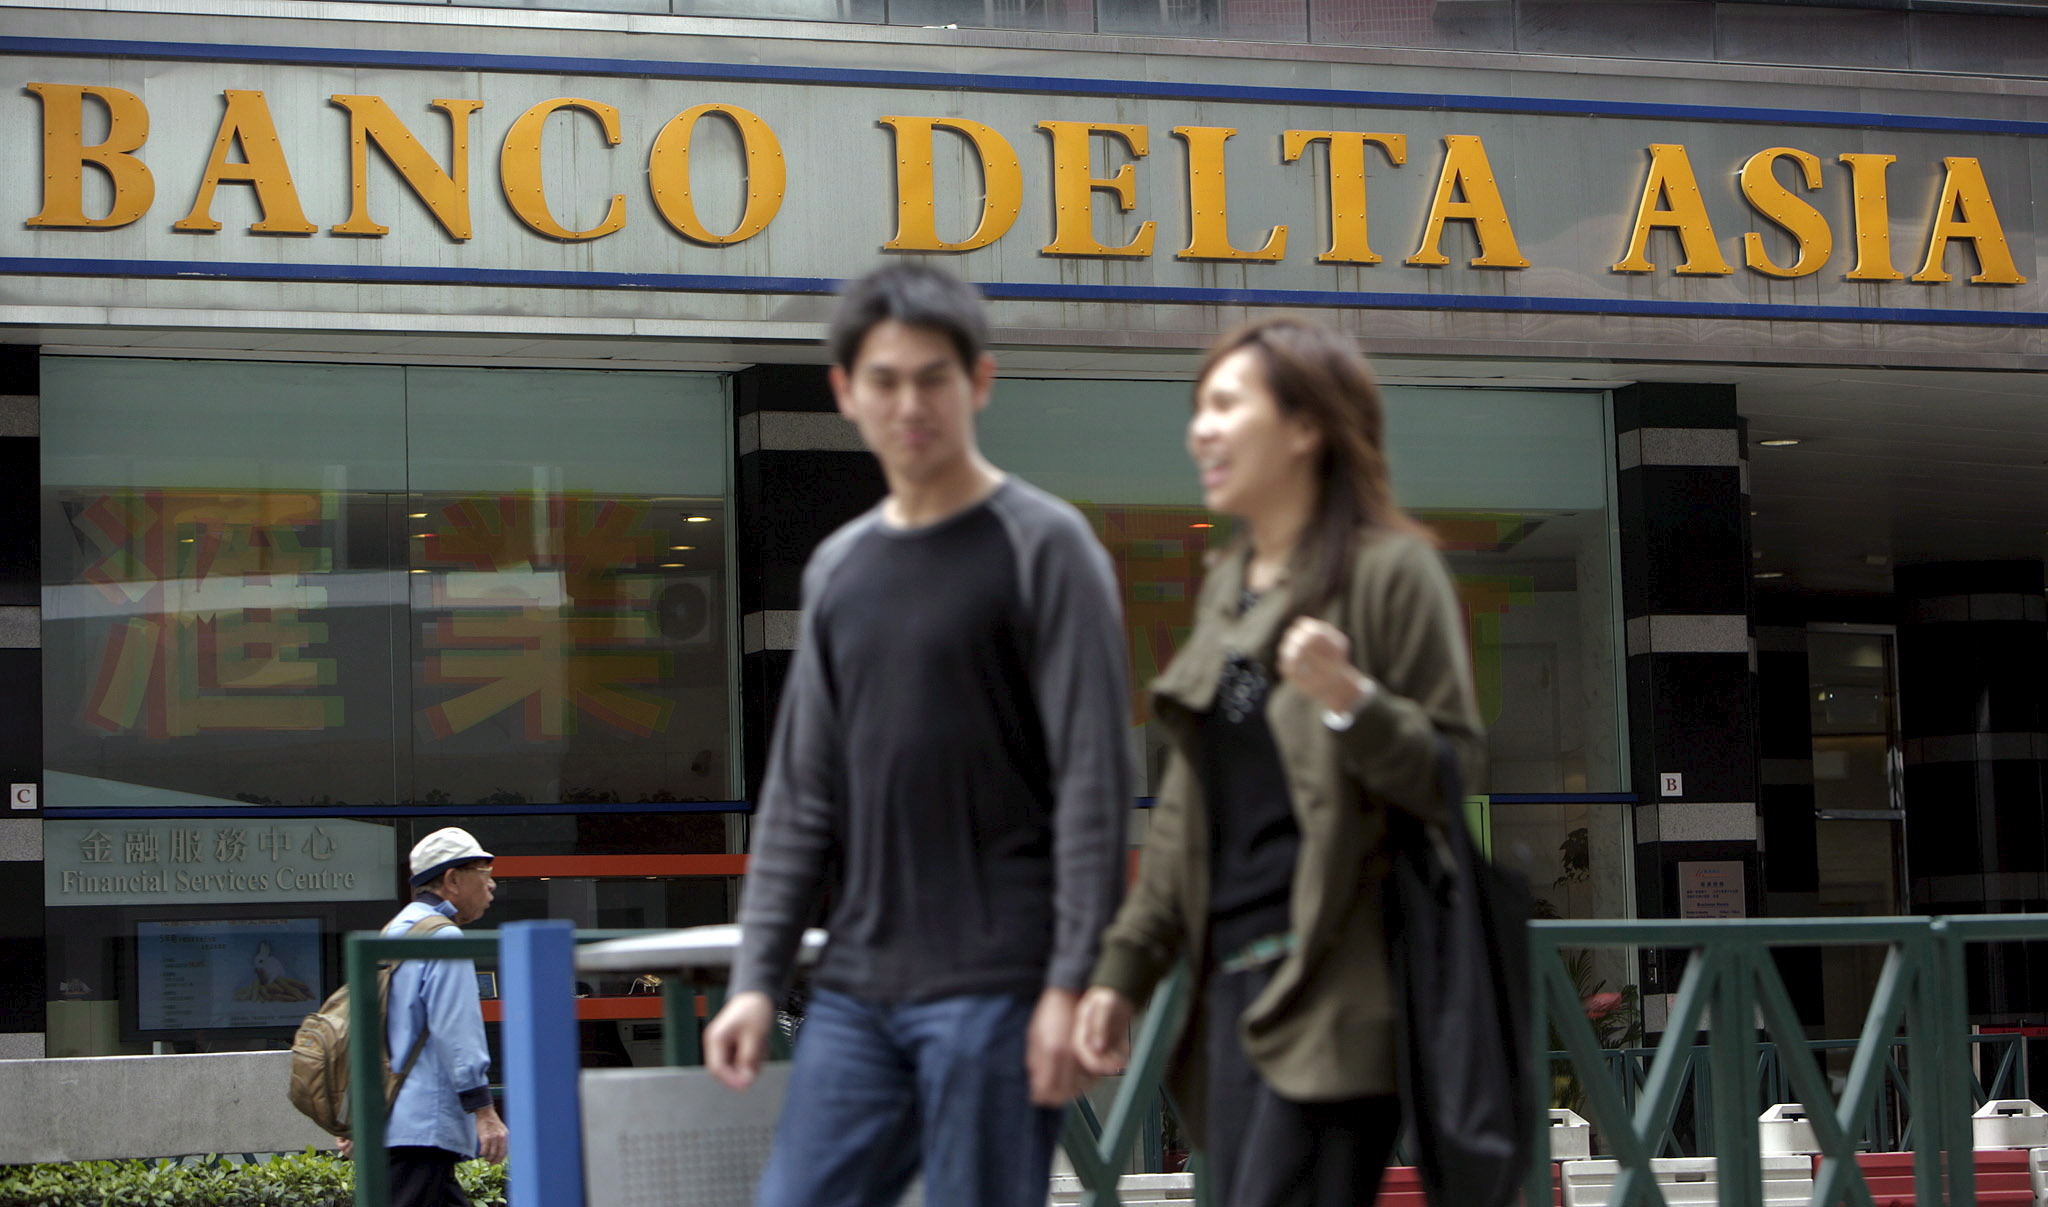 People walk past a branch of Banco Delta Asia in Macau ,China , Wednesday 14 March 2007. Chairman Stanley Au of Banco Delta Asia SARL , on Friday 16 March 2007, denied wrongdoing over frozen North Korean assets and said the bank has complied with Macau law. China on Thursday criticized a US decision to ban all transactions with the Macau bank linked to illicit North Korean funds.